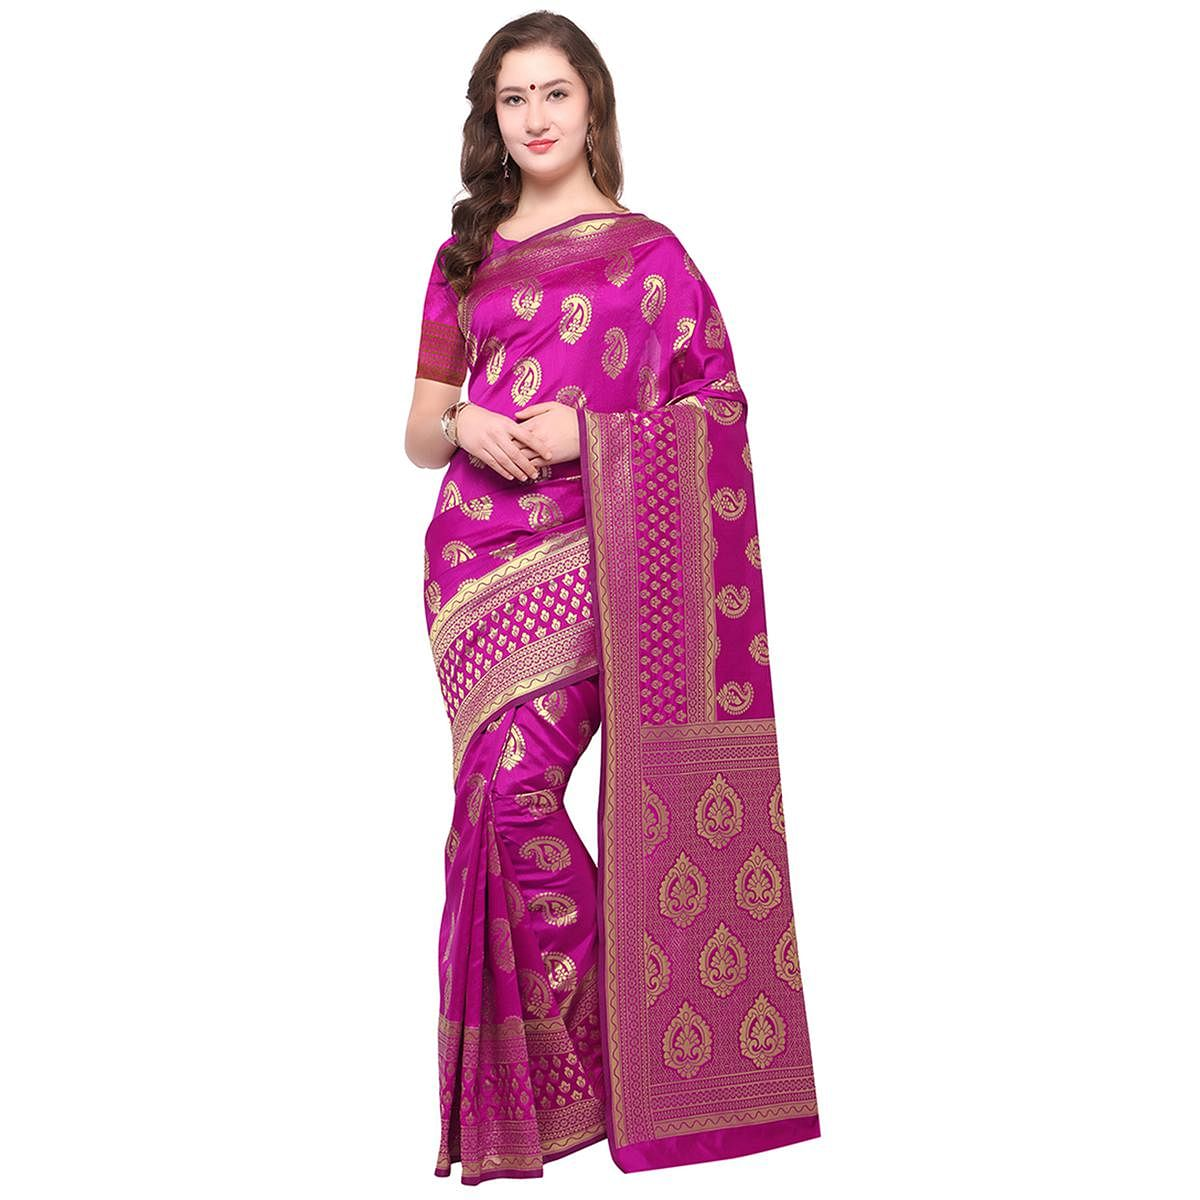 Glowing Pink Colored Festive Wear Woven Banarasi Art Silk Saree